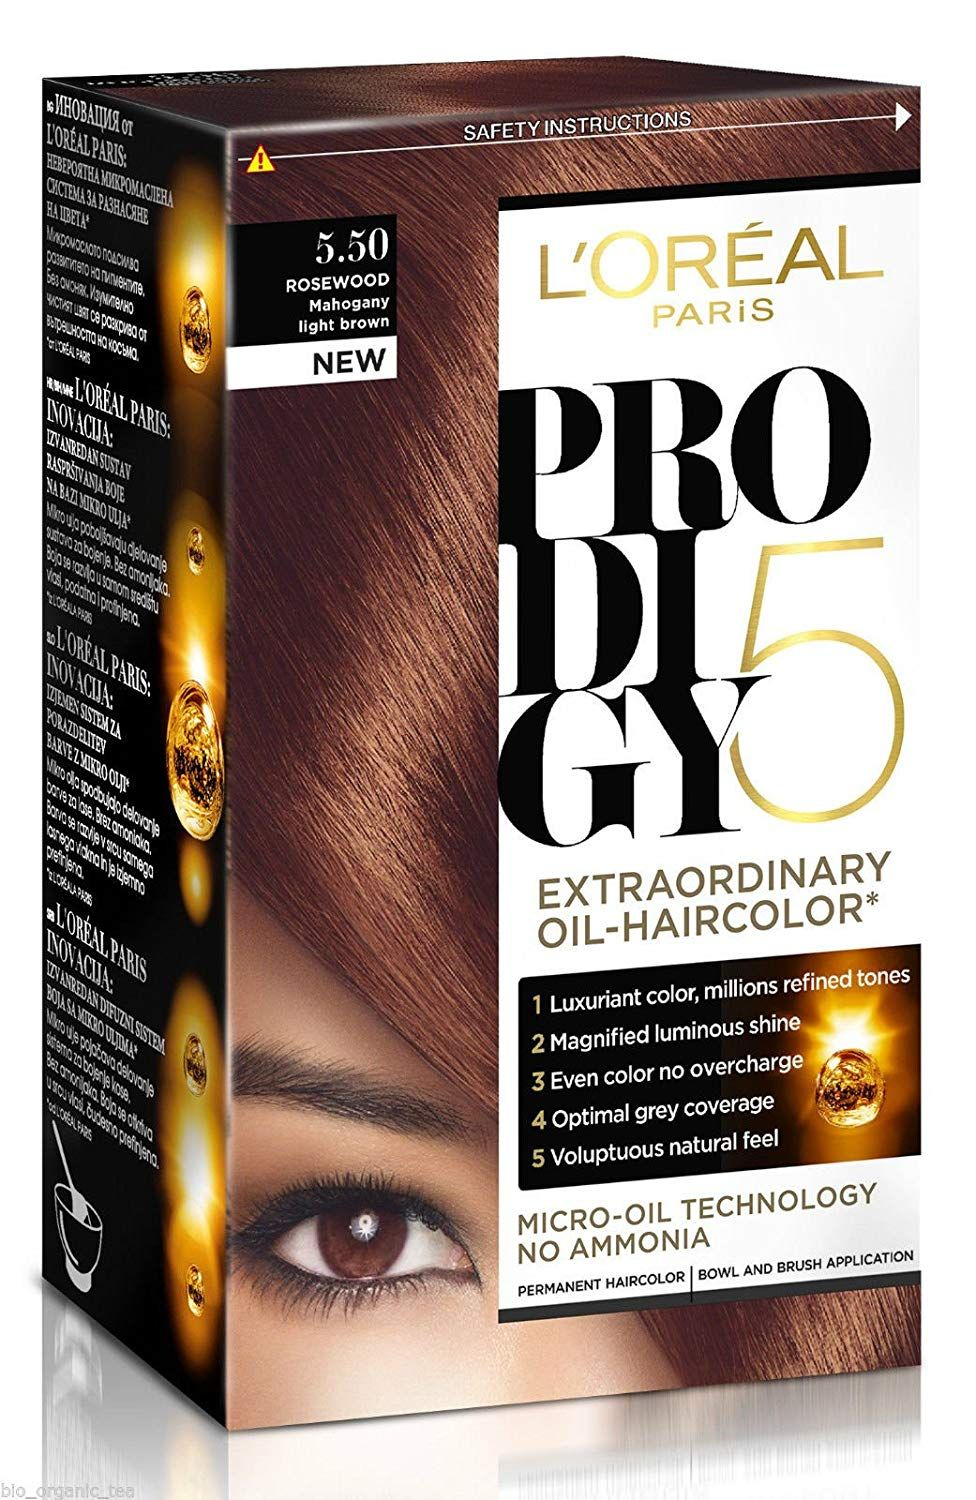 L Oreal Prodigy Permanent Hair Colour Micro Oil Technology No Ammonia 5 50 Mahogany Light Brown Find Out More About Hair Color Loreal Permanent Hair Color